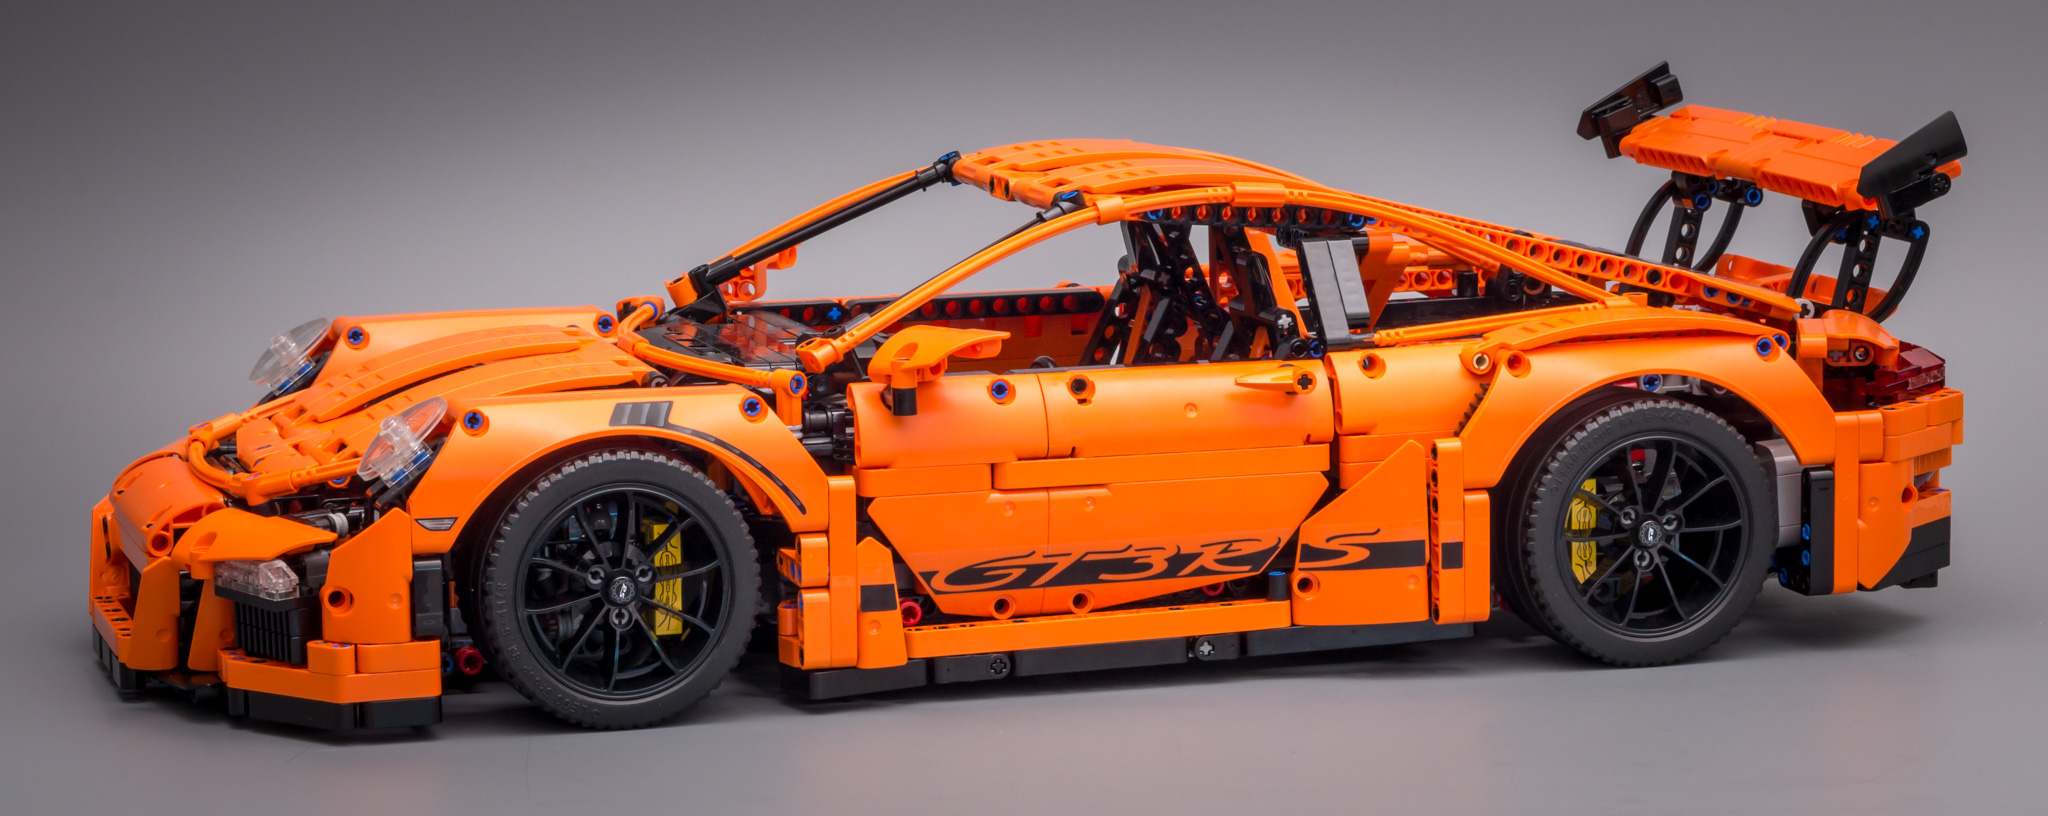 42056 porsche gt3 rs customer stickers lego technic. Black Bedroom Furniture Sets. Home Design Ideas